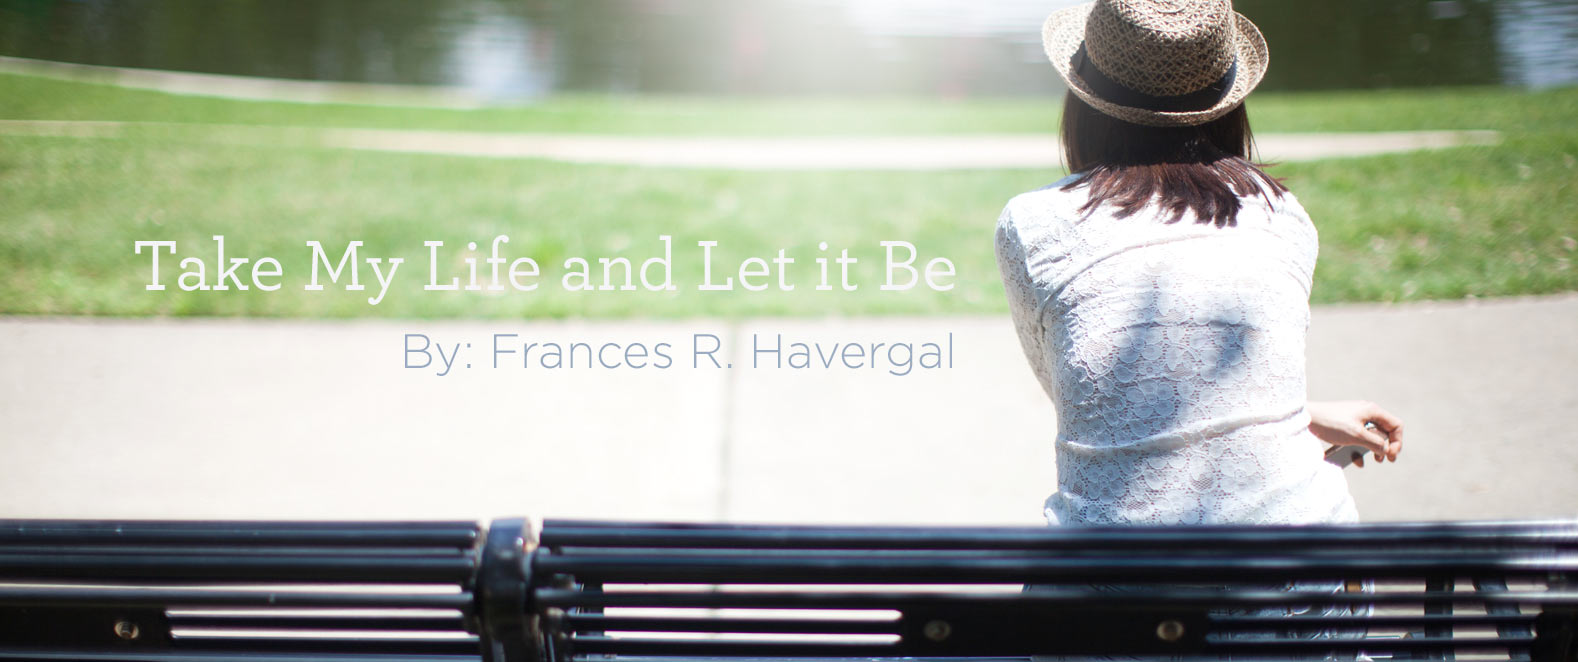 thumbnail image for Hymn: Take My Life and Let it Be